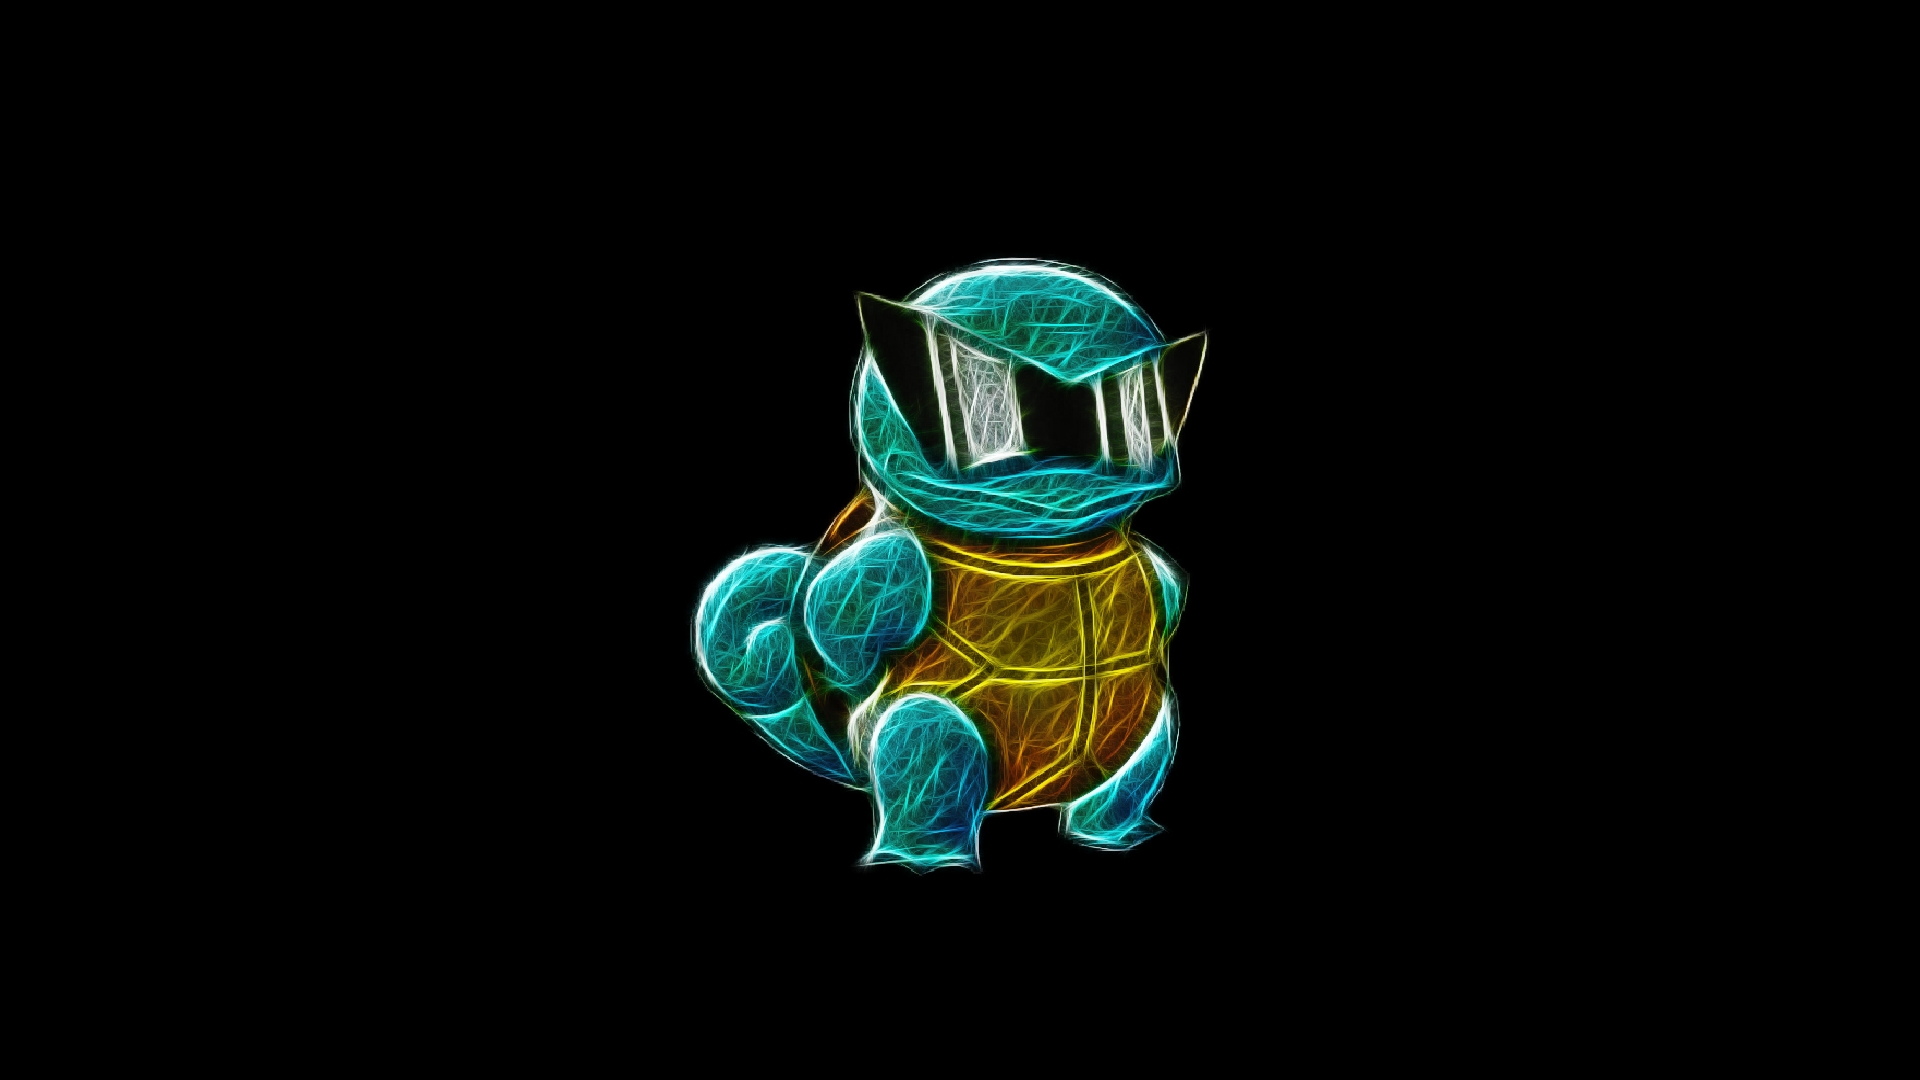 Squirtle Wallpapers - Wallpaper Cave